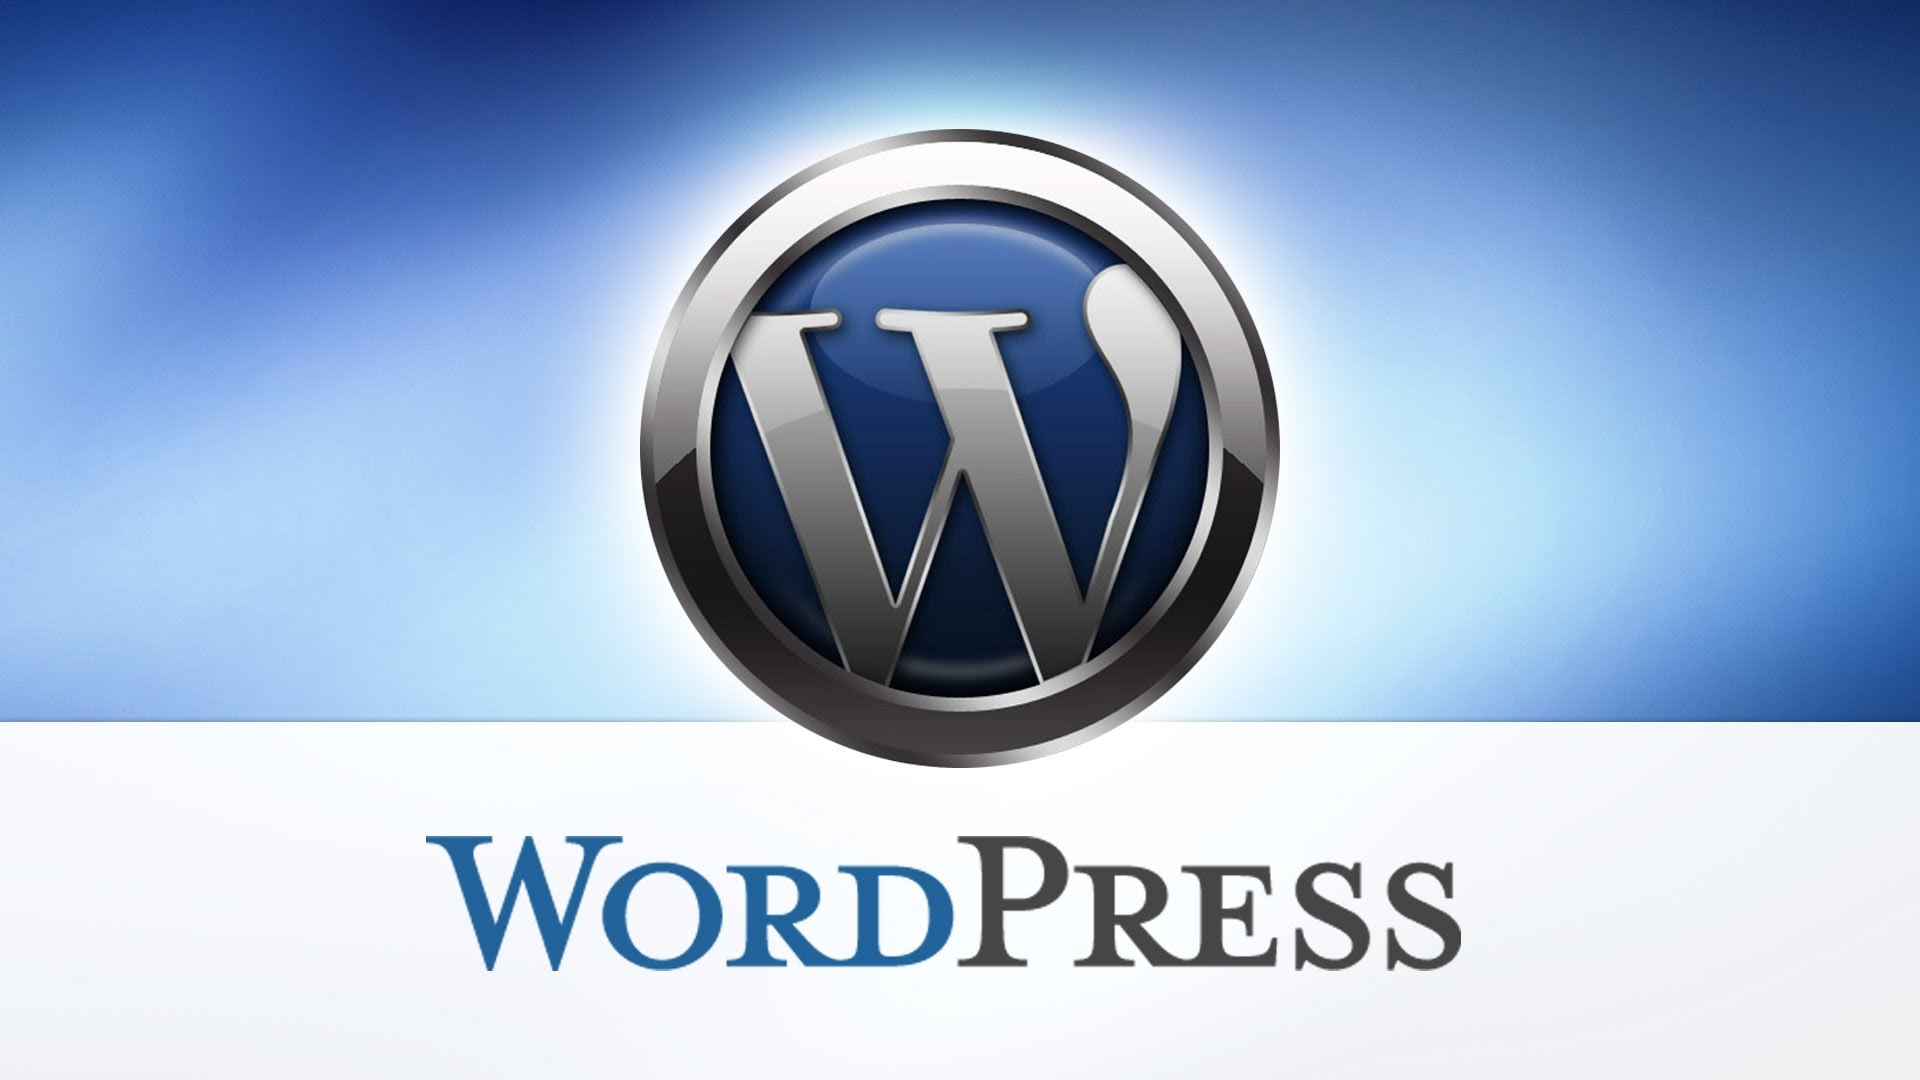 We will Do wordpress changes for 30 minute